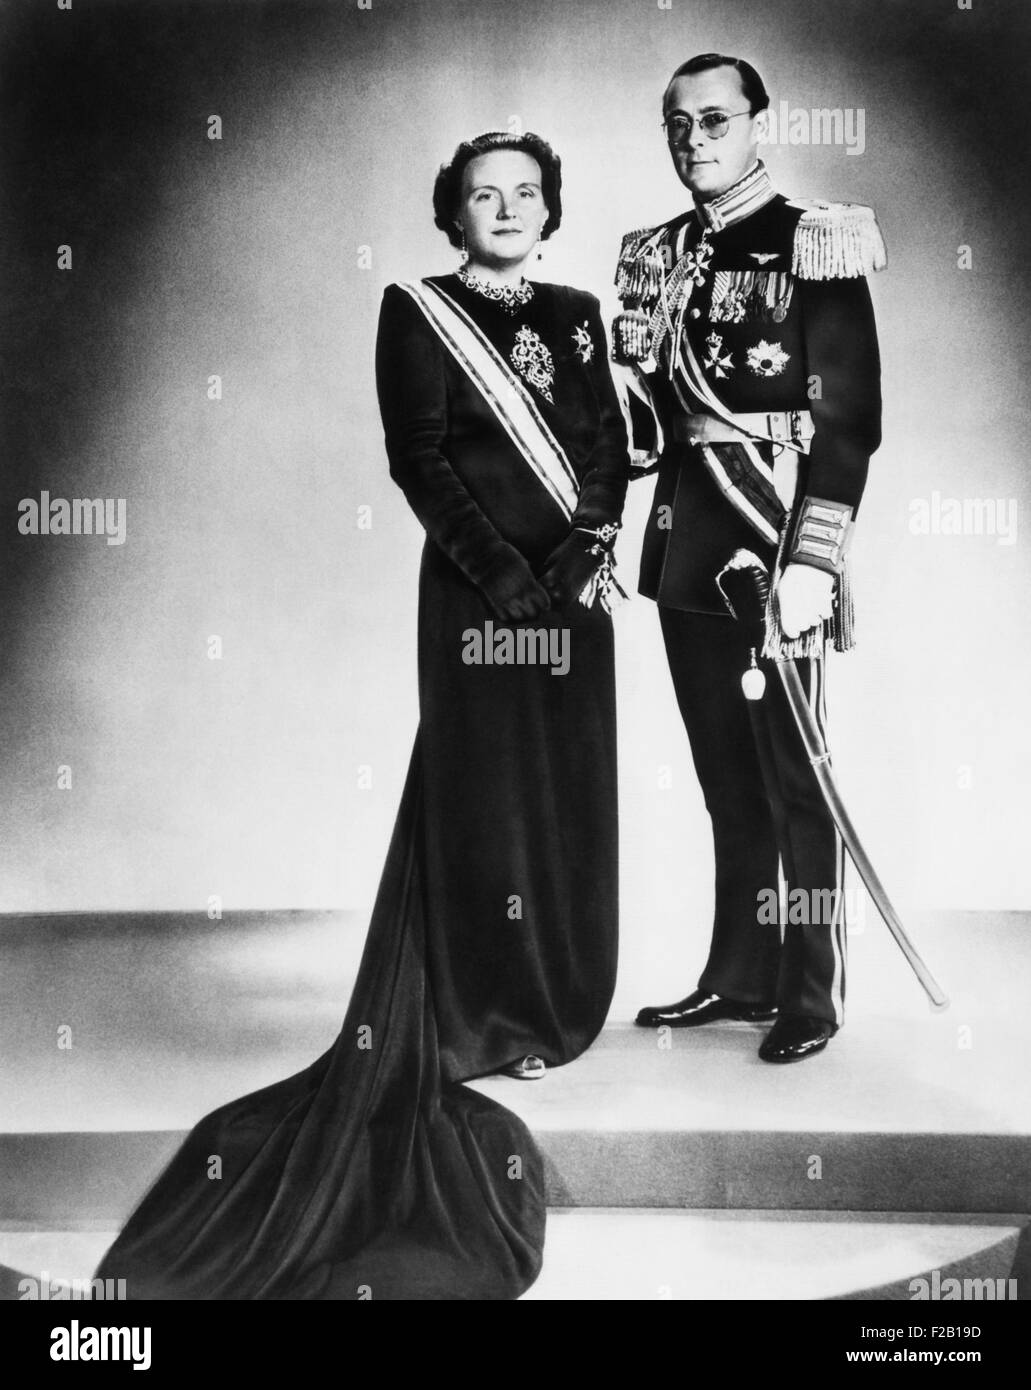 Queen Juliana of the Netherlands and her consort, Prince Bernhard, on her accession to the throne. She succeeded - Stock Image